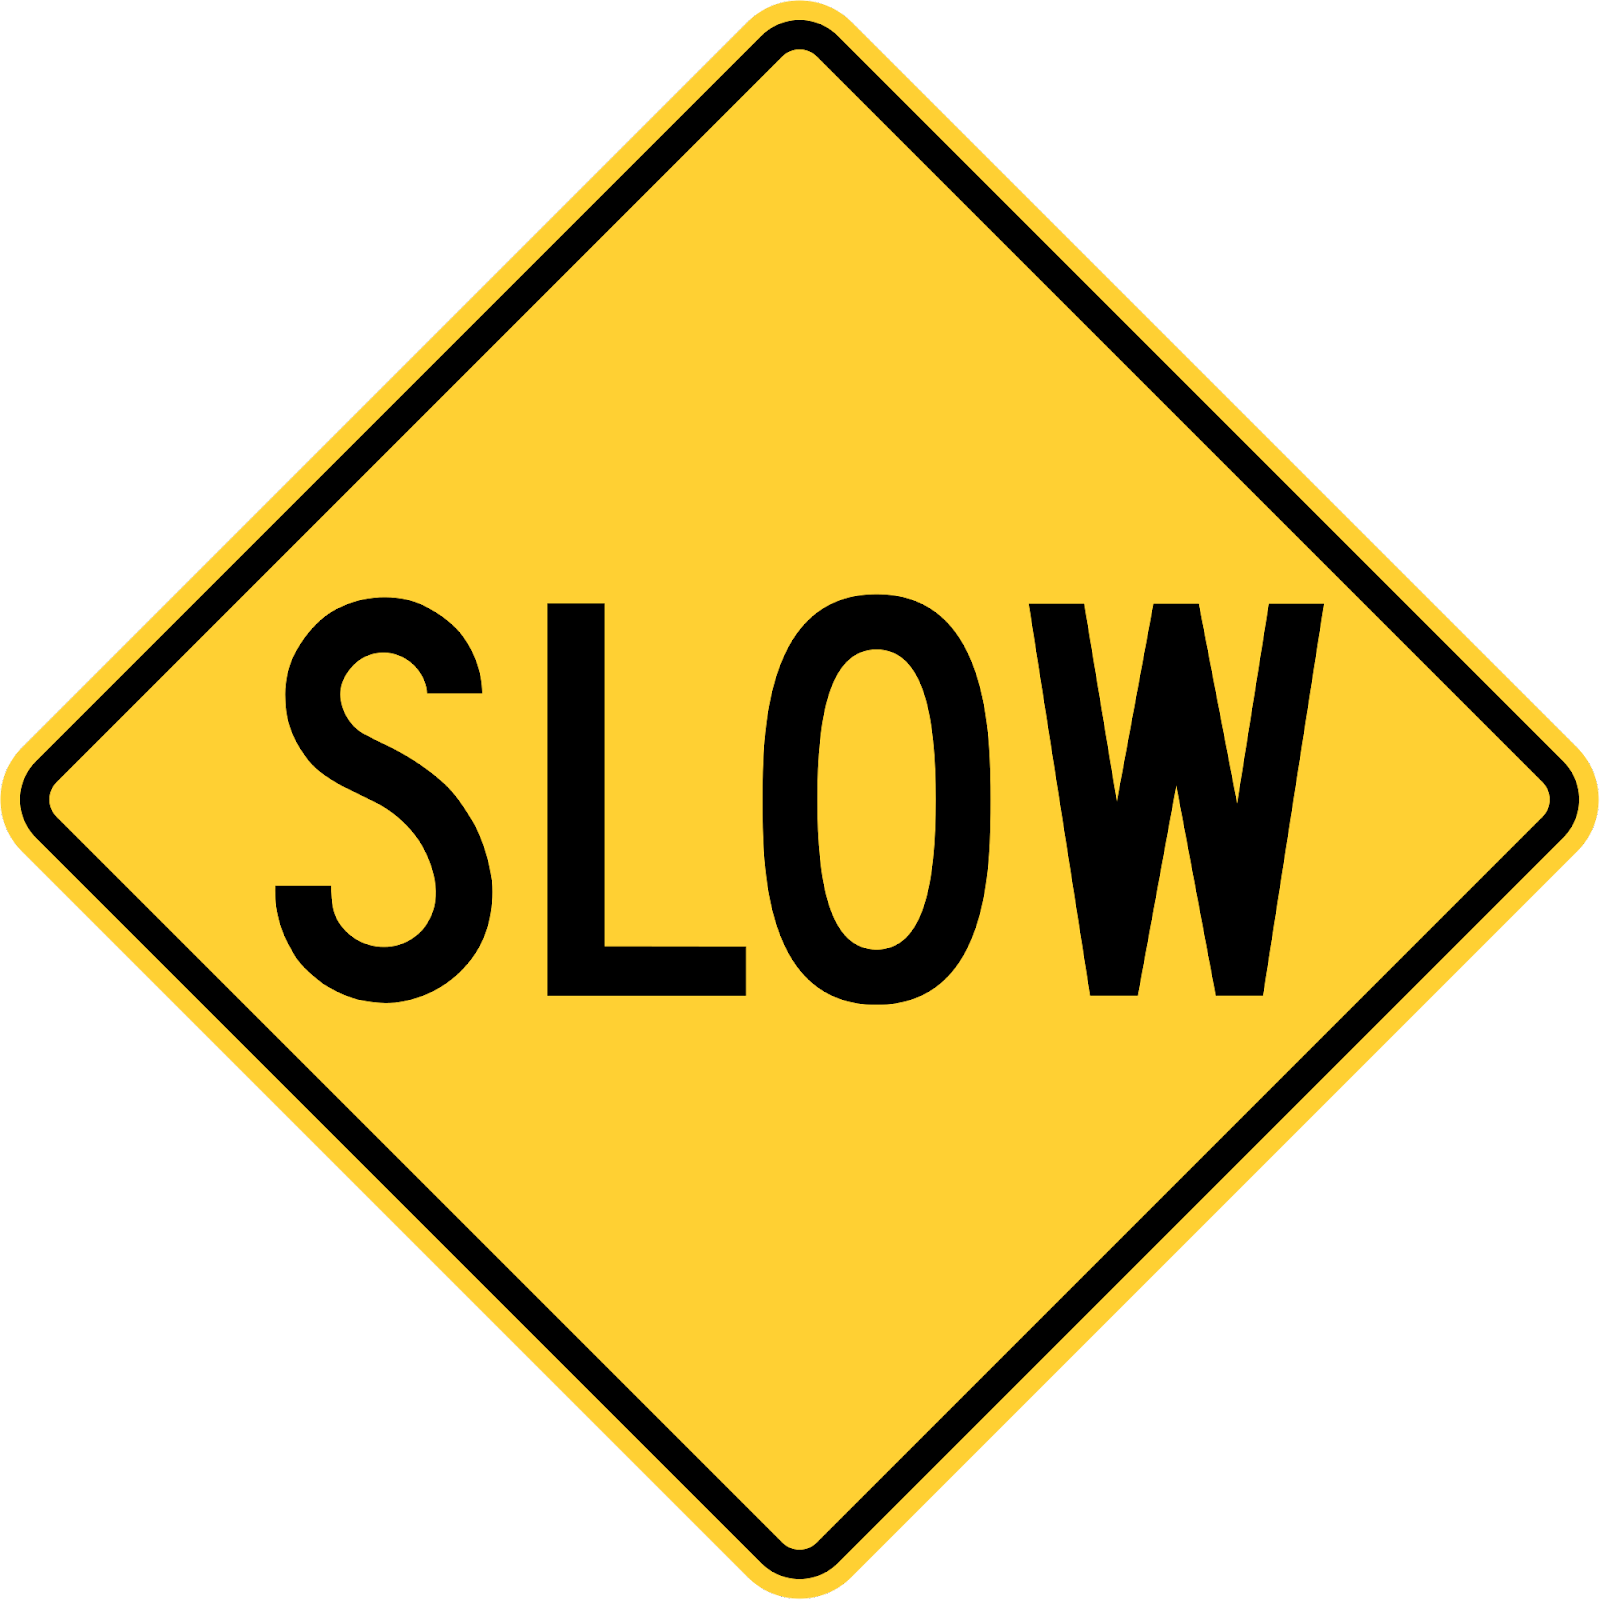 File:Yellow Traffic Sign.jpg - Wikimedia Commons